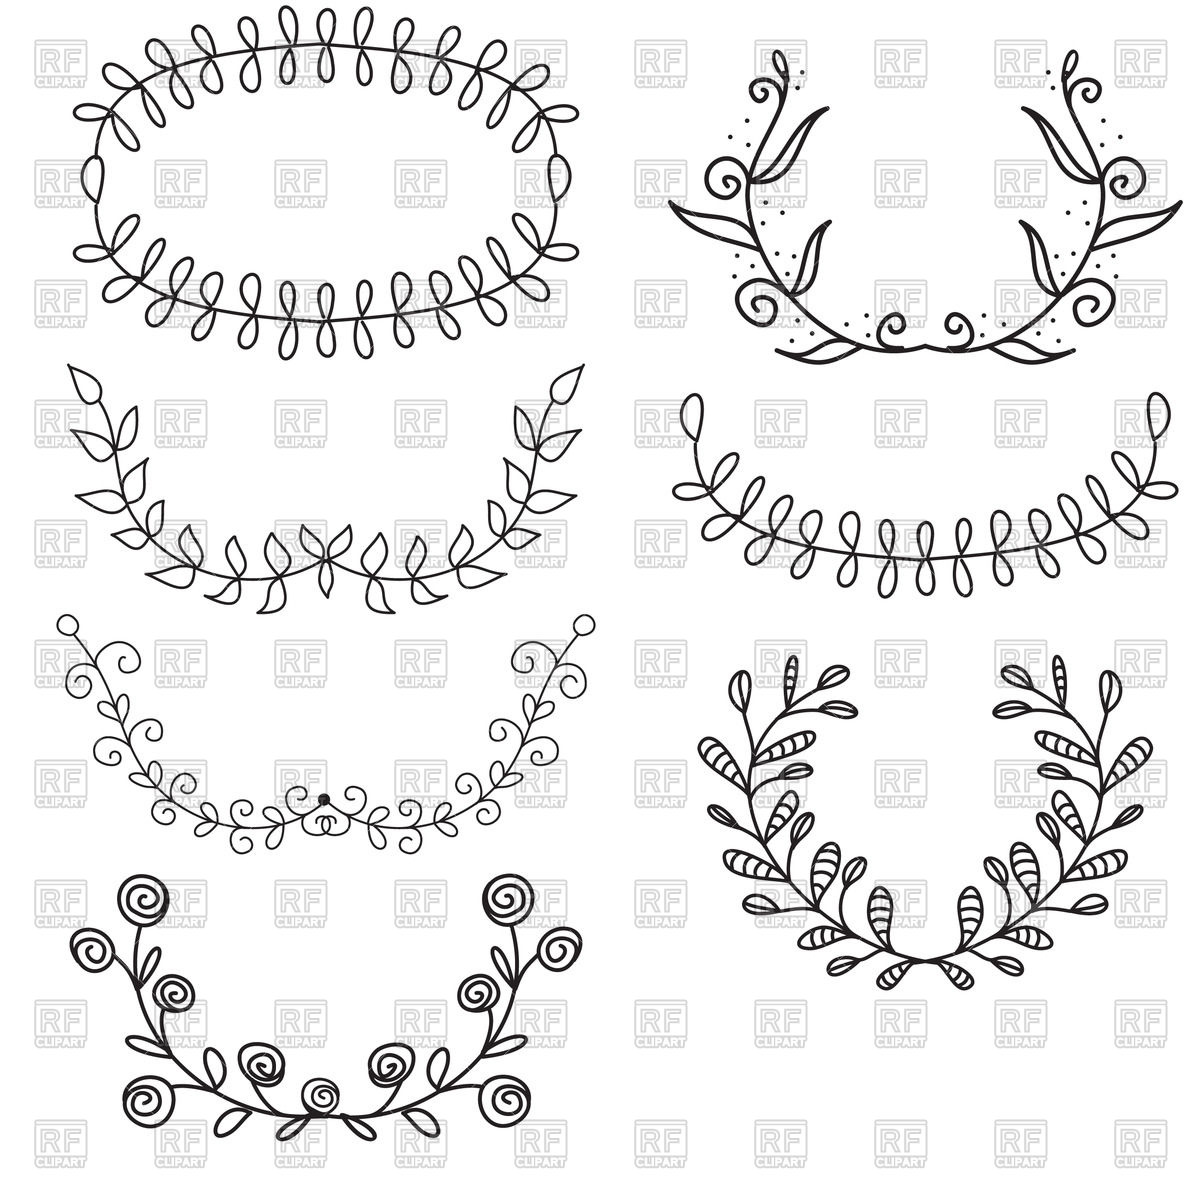 Simple wreaths vector image. Laurel clipart line royalty free download